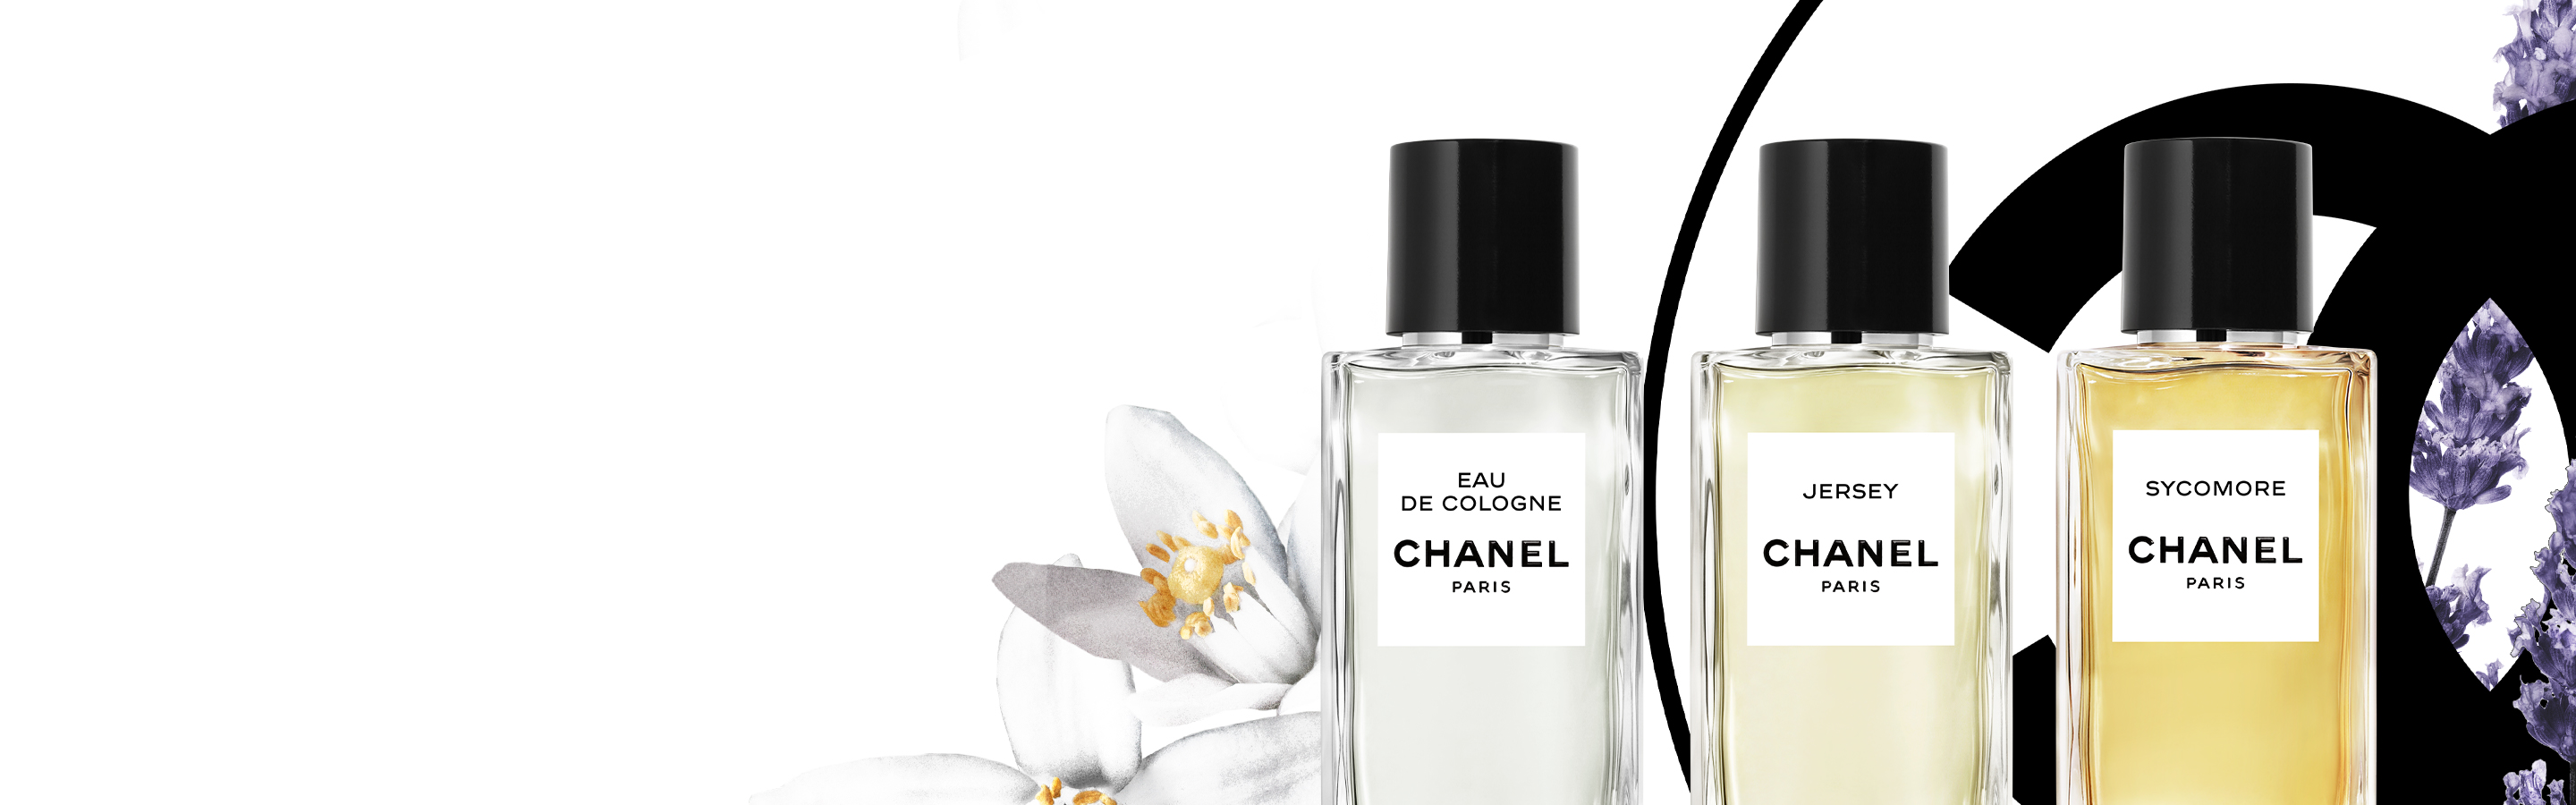 Les Exclusifs de CHANEL - Fragrance Official site